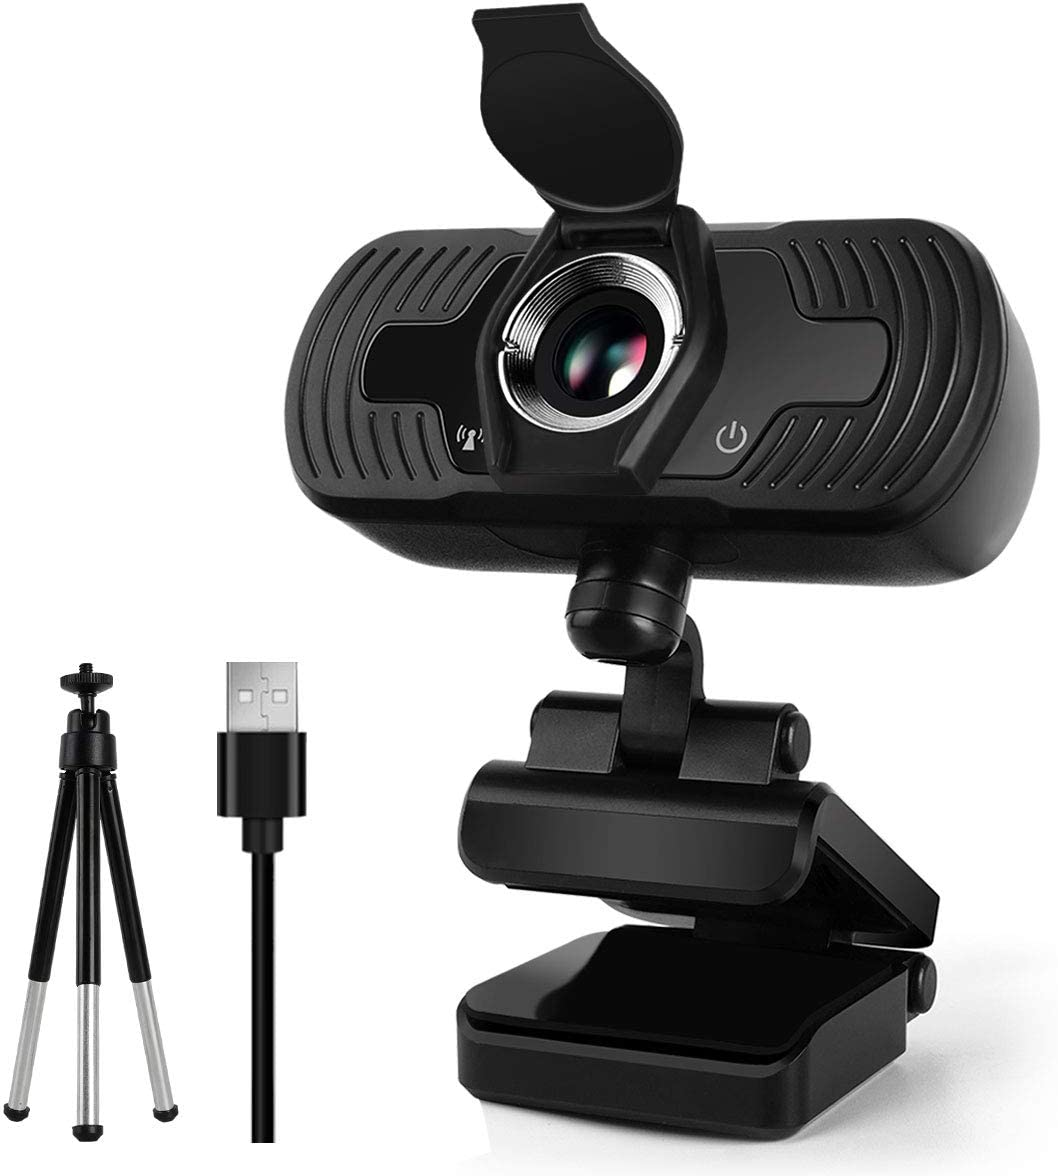 1080p HD Webcam with Microphone for Desktop Laptop PC MacBook, USB Camera Streaming Webcam with Free Privacy Cover &Tripod Stand Wide Angle for Zoom Video Conference Calls, Gaming Webcam for Xbox One